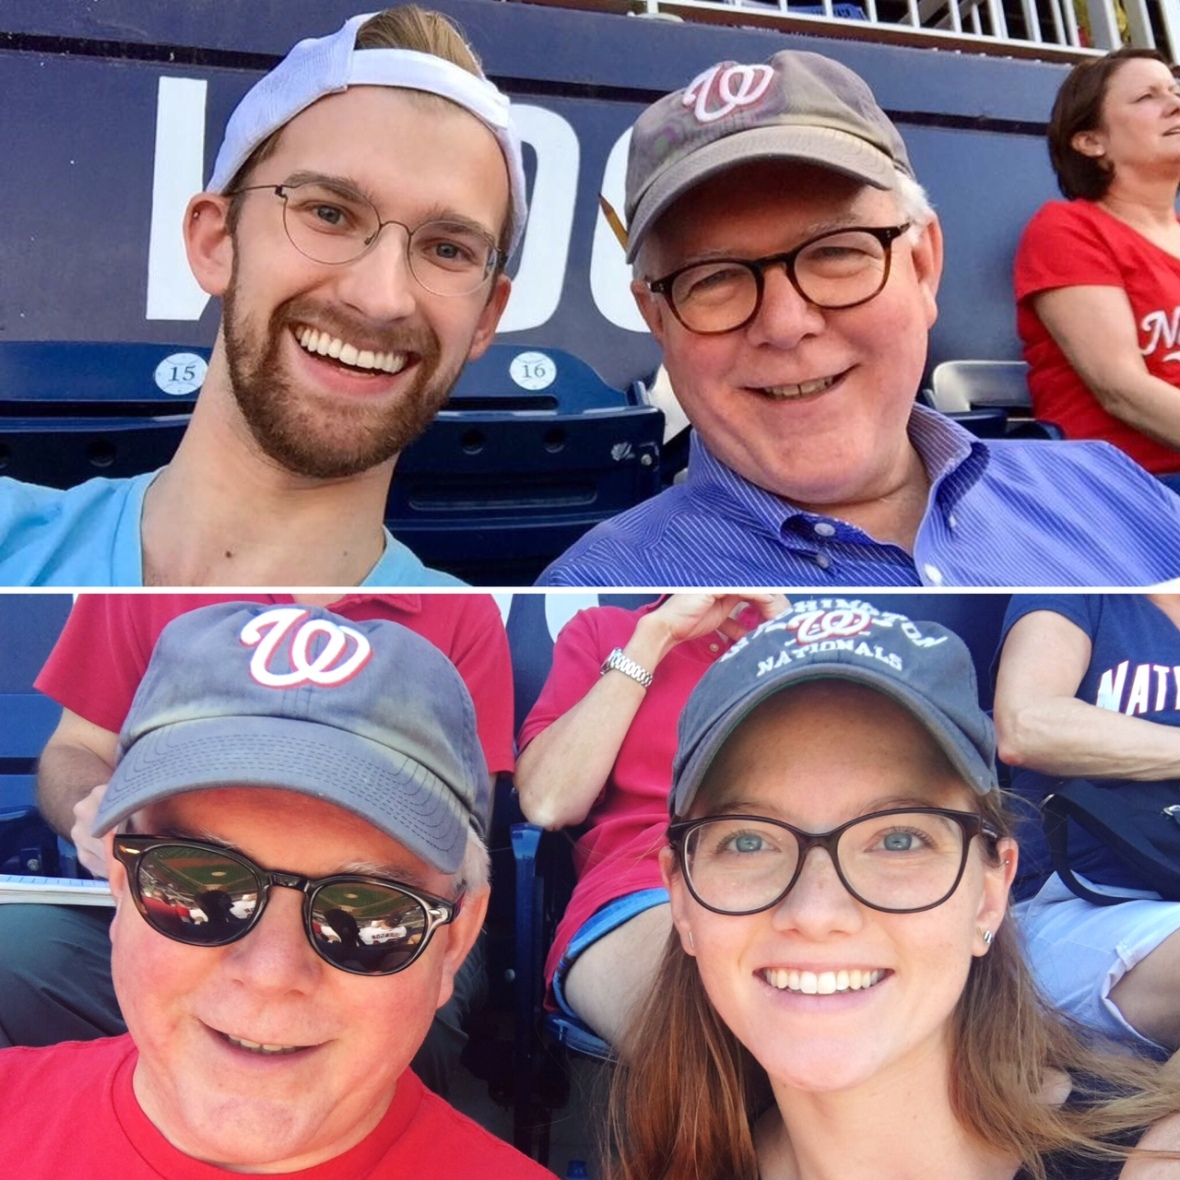 DJB with ABB and CHB at Nats Park